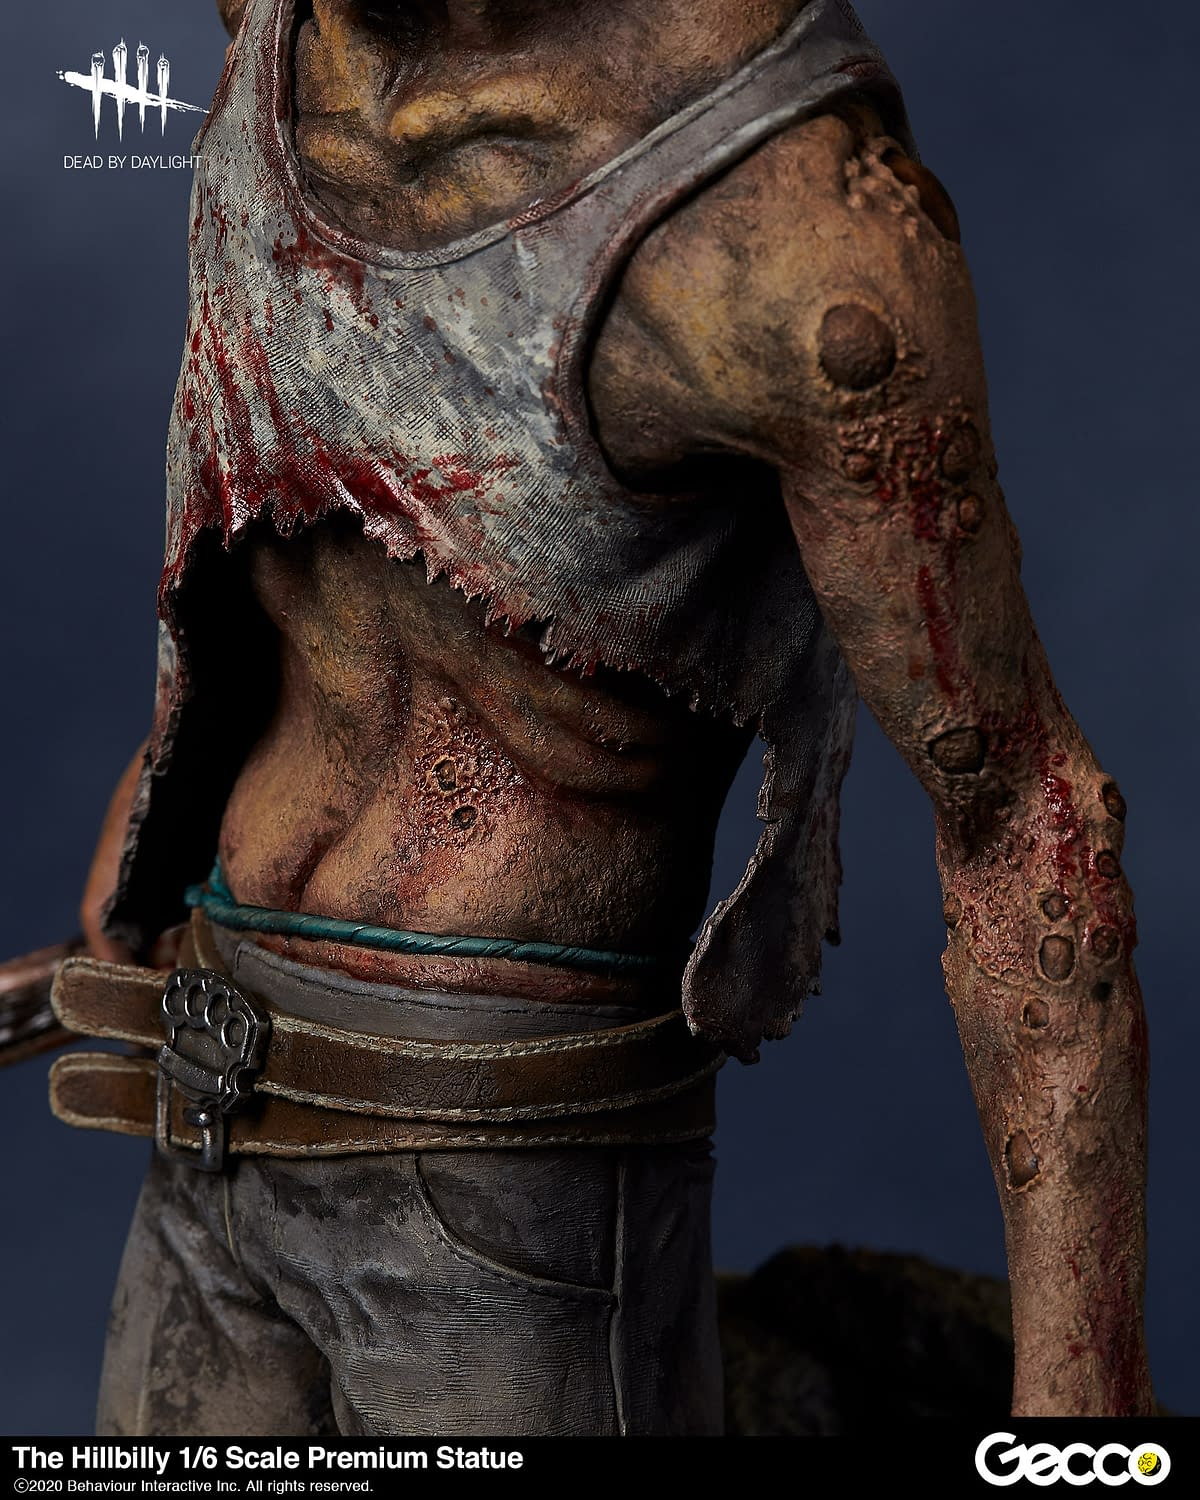 Gecco-Dead-by-Daylight-Hillbilly-Statue-011